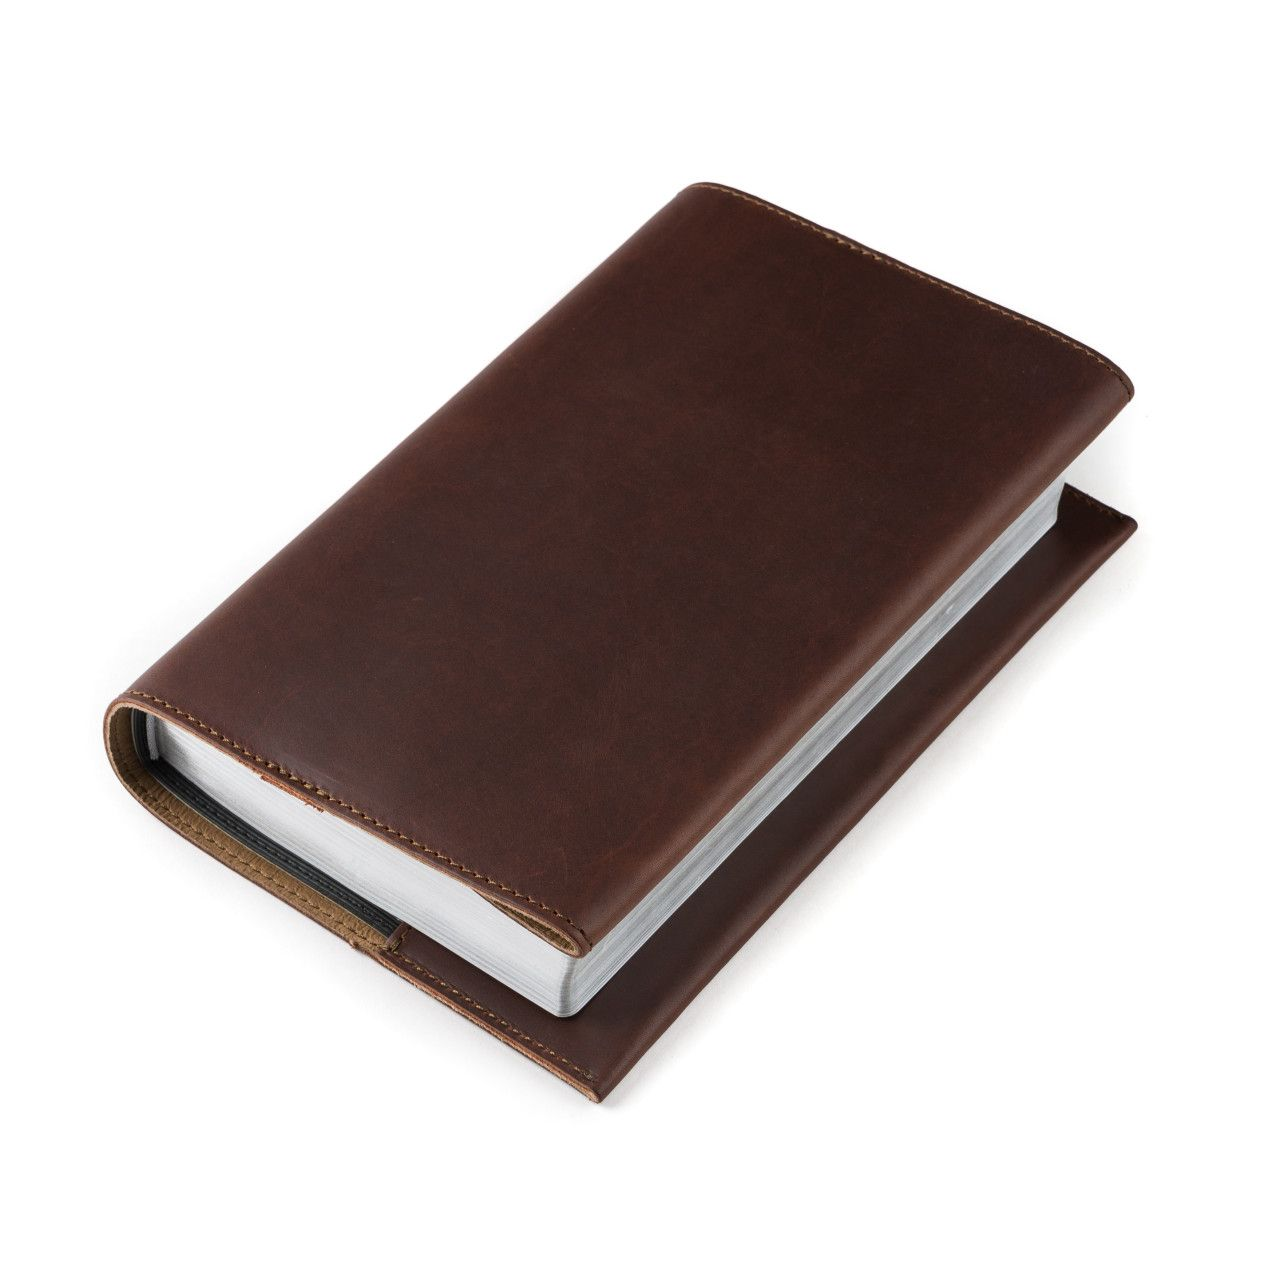 leather book cover medium in chestnut leather